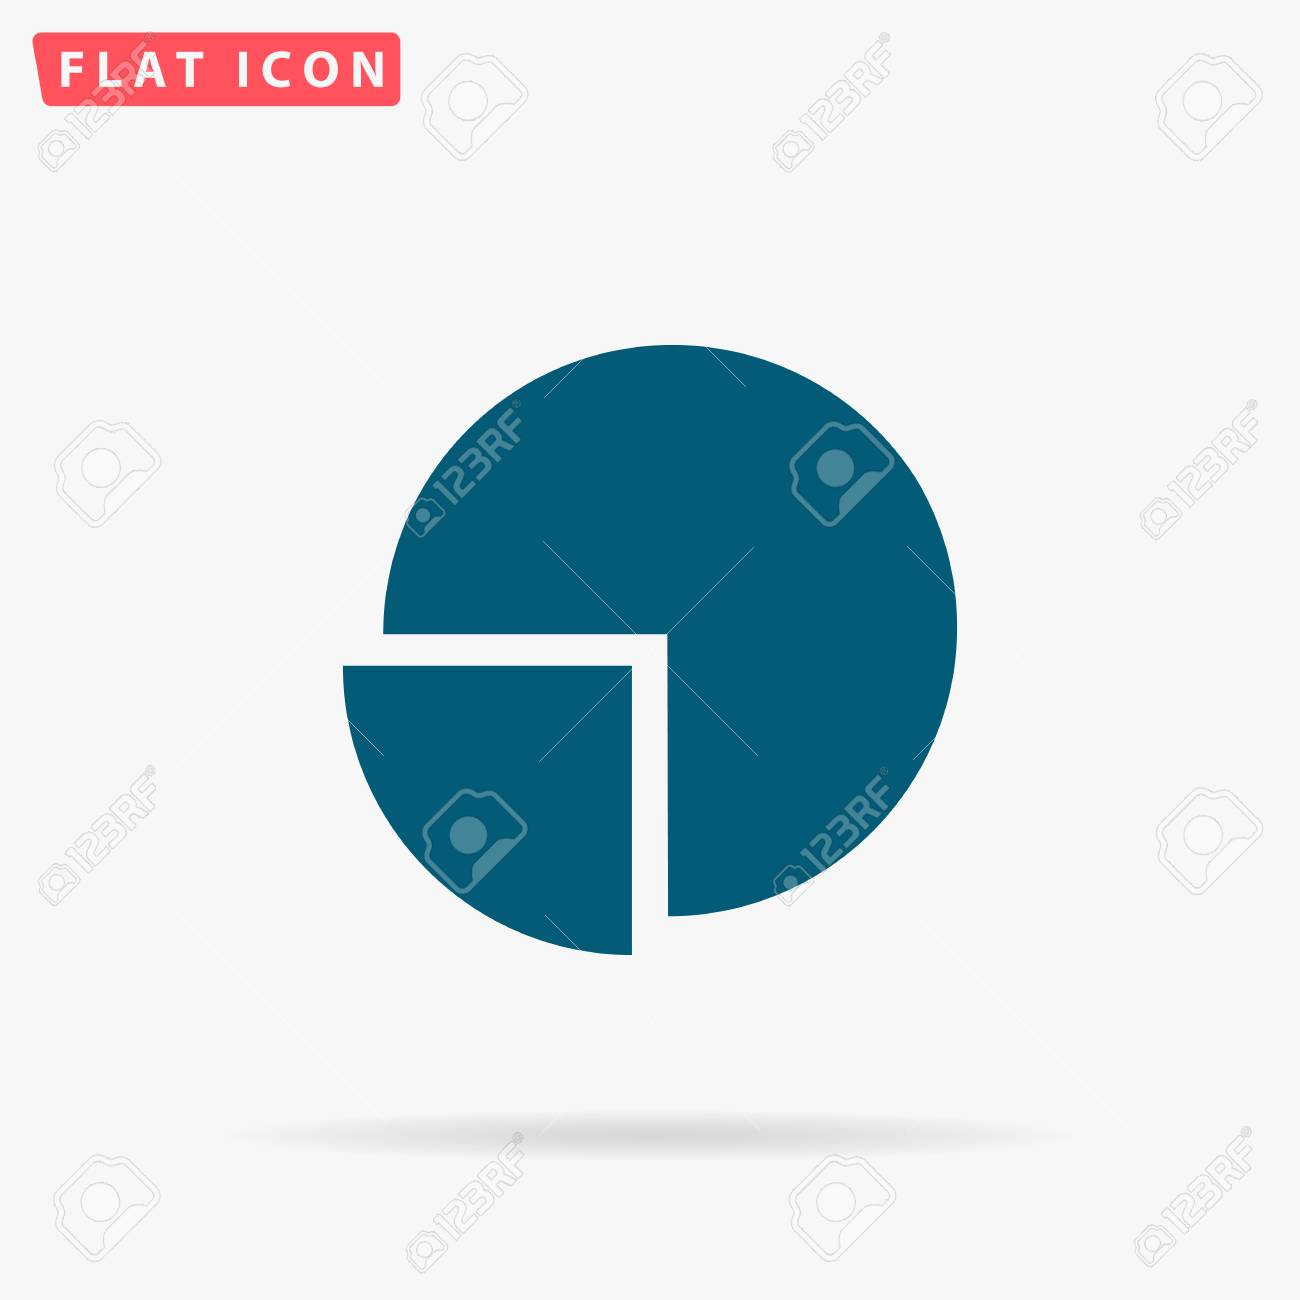 Diagram icon vector flat simple blue pictogram on white background diagram icon vector flat simple blue pictogram on white background illustration symbol with shadow ccuart Image collections